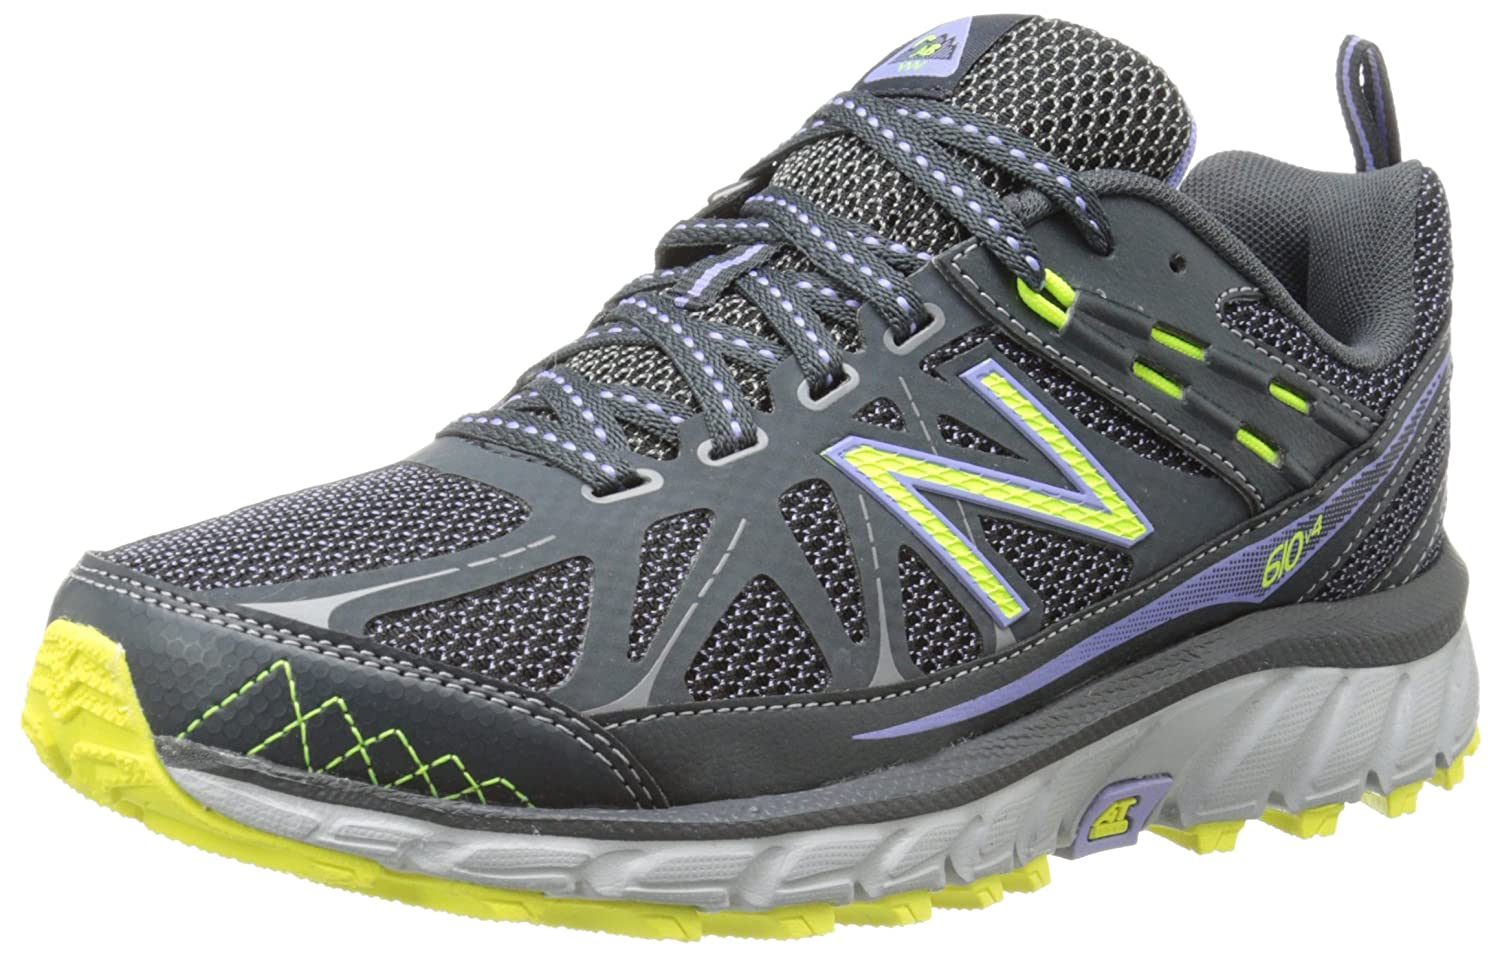 New Balance Women's WT610V4 Trail Shoe B00KJCIX5I 5.5 D US|Grey/Purple